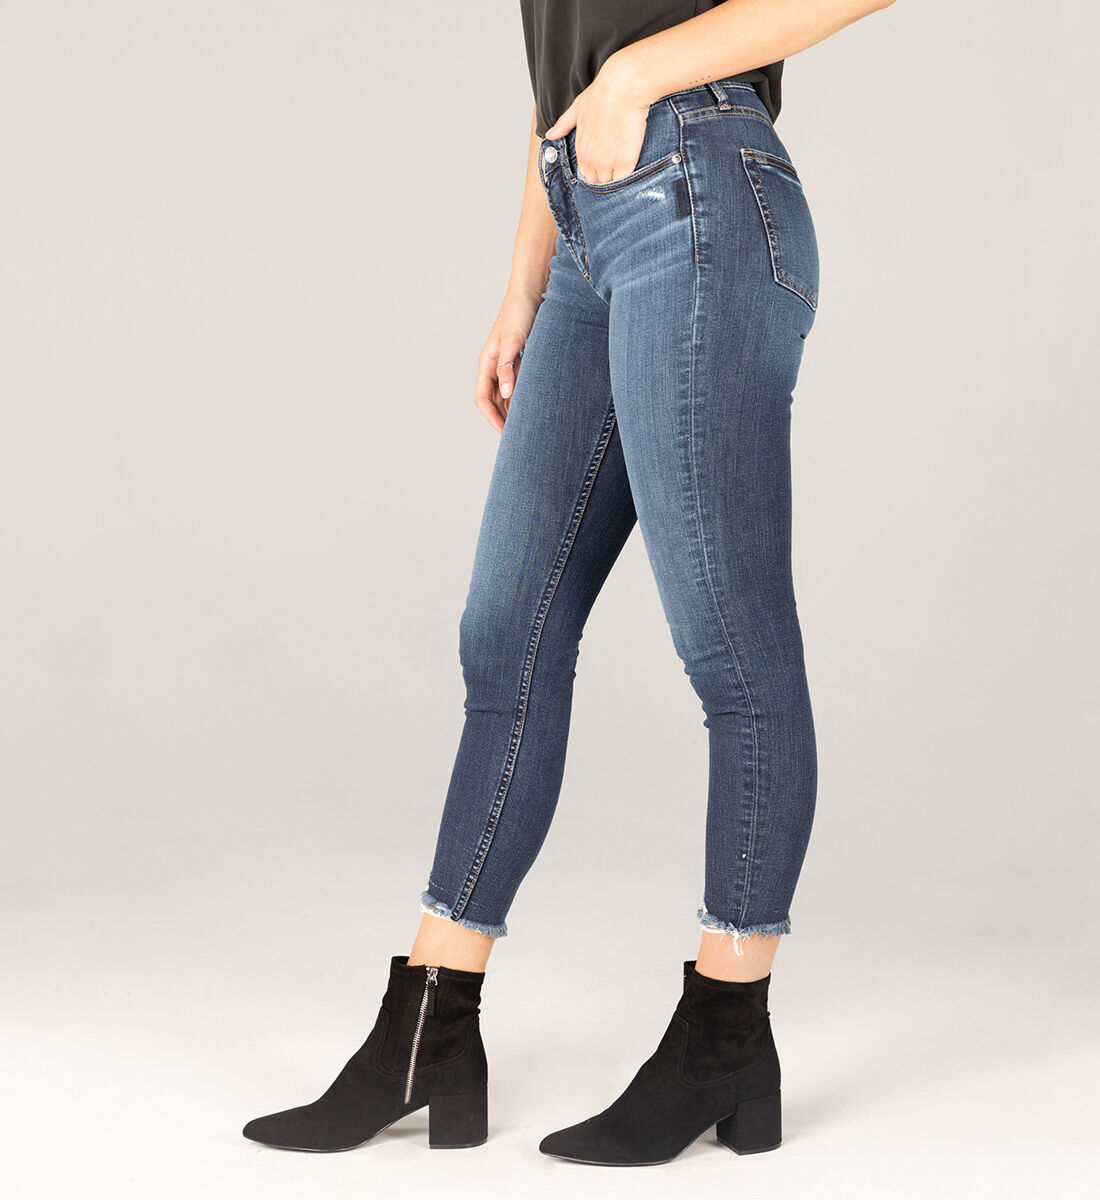 Most Wanted Mid Rise Skinny Jeans Side